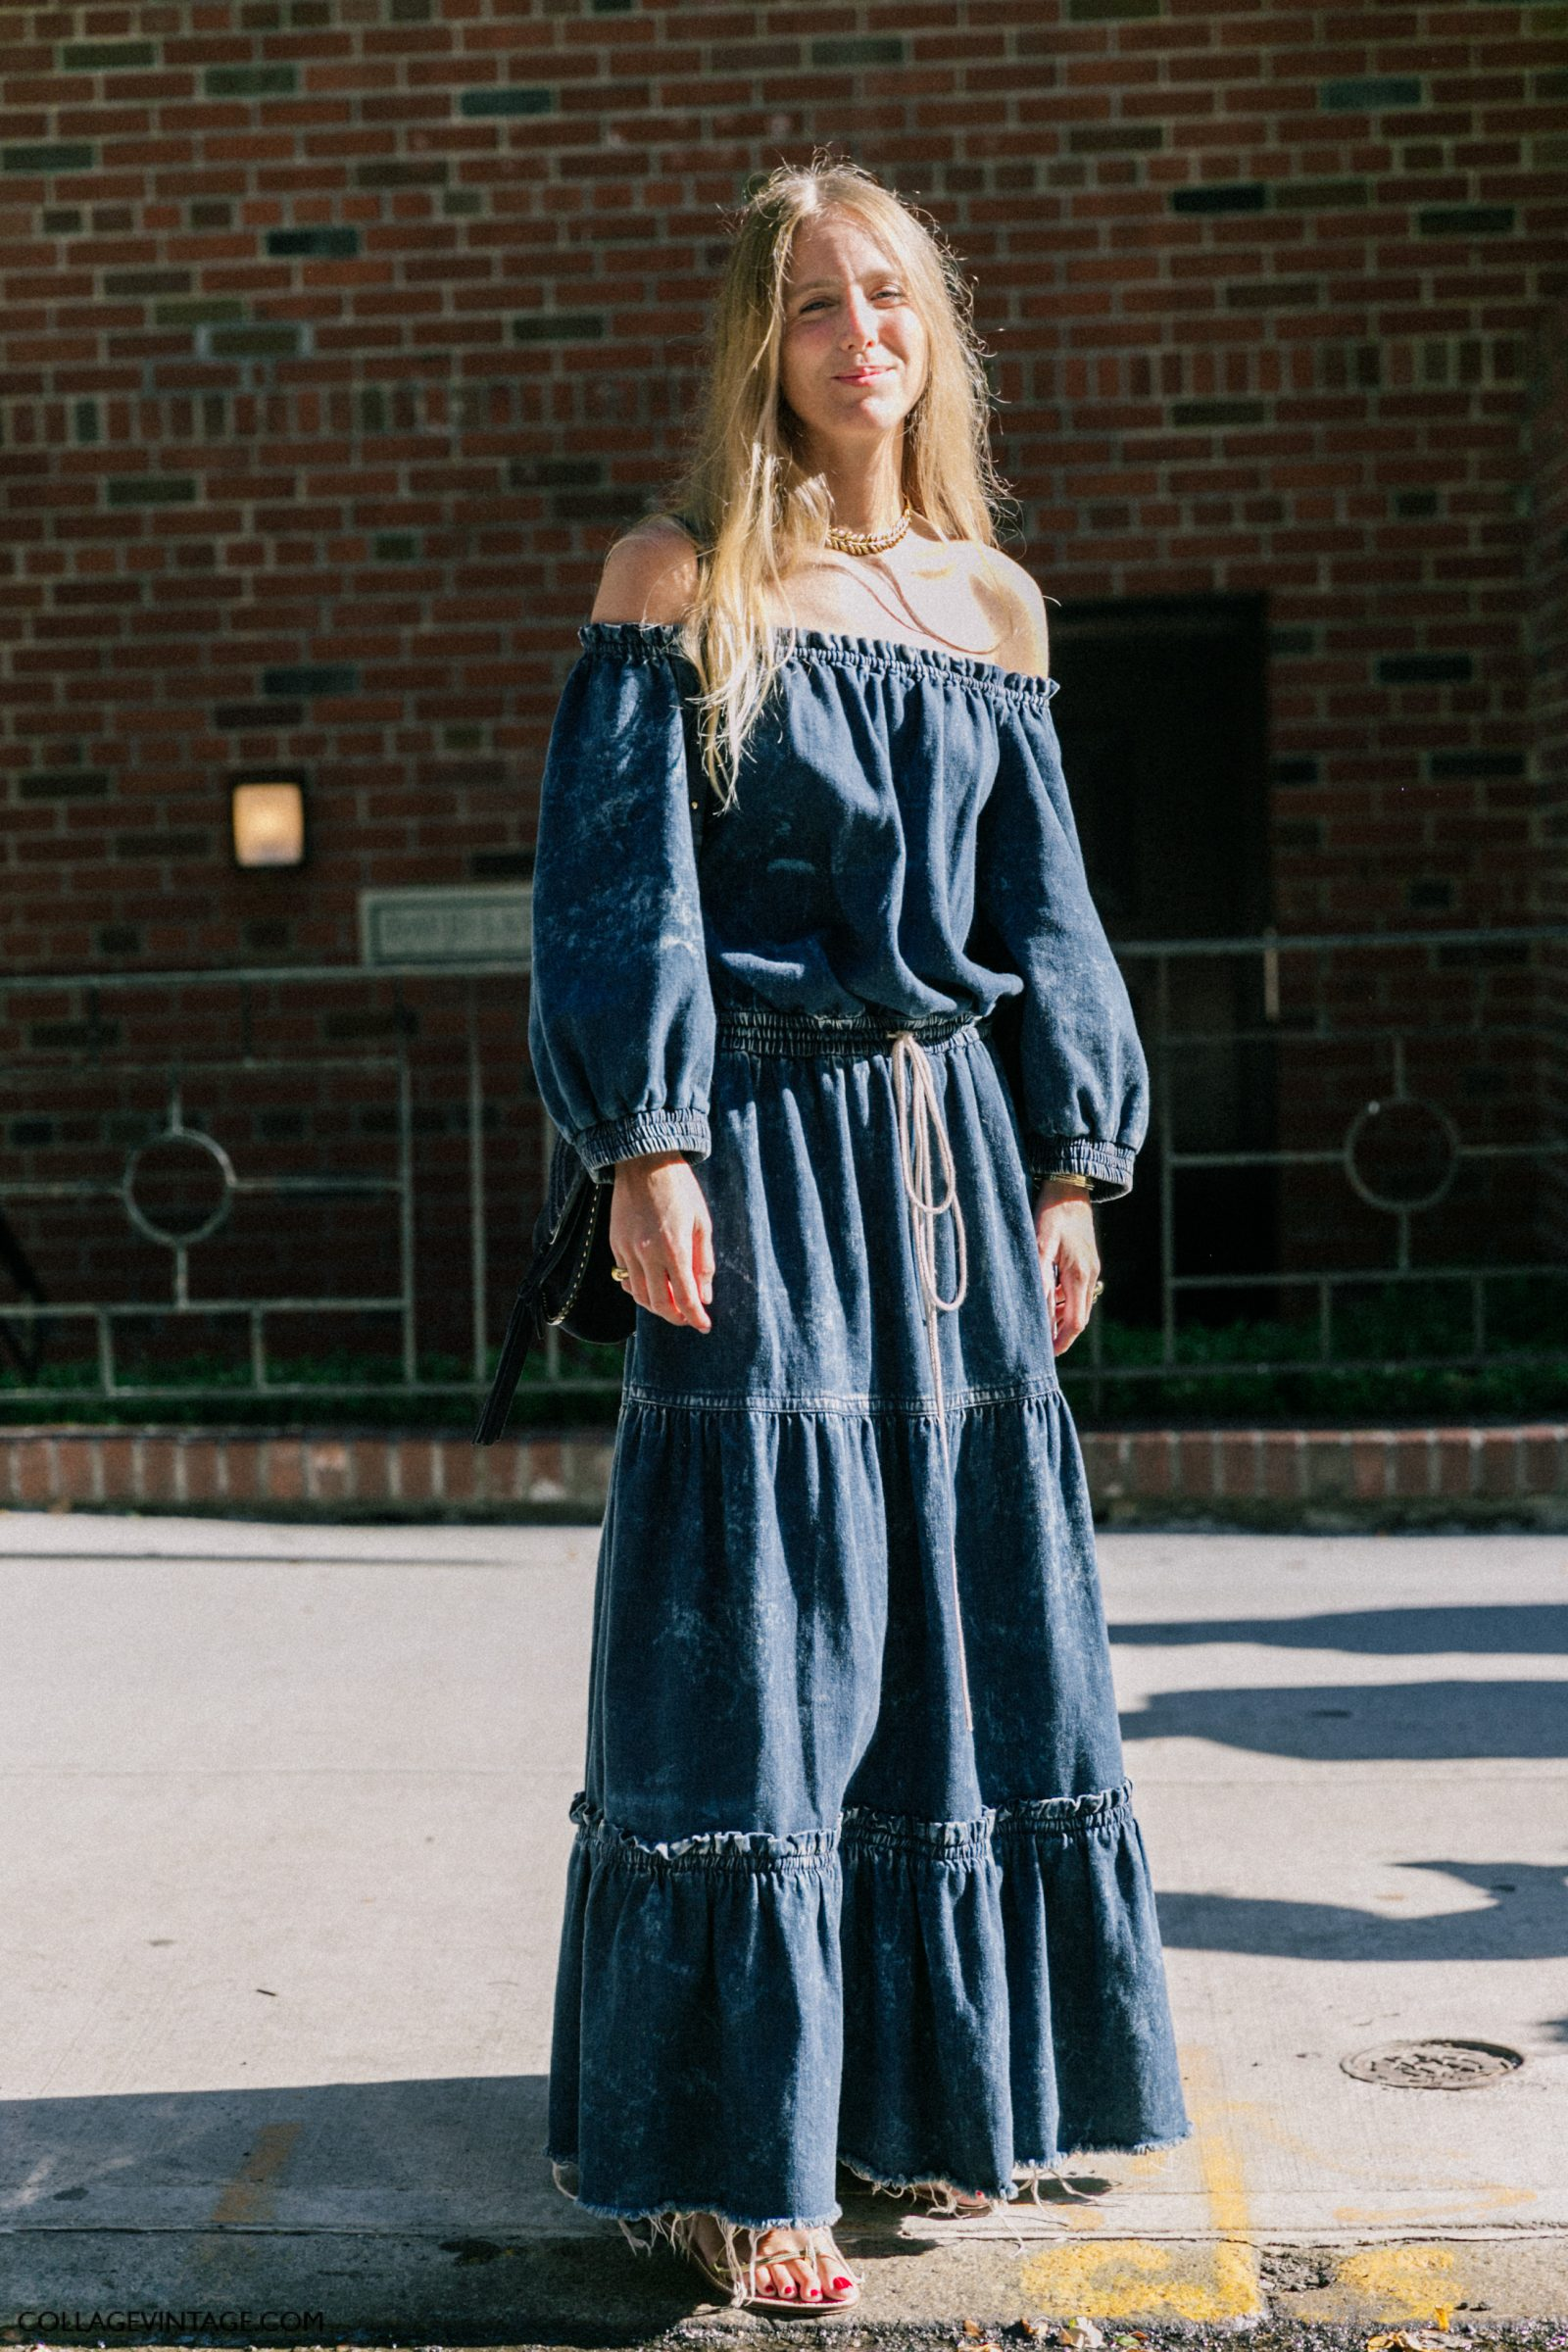 nyfw-new_york_fashion_week_ss17-street_style-outfits-collage_vintage-vintage-phillip_lim-the-row-proenza_schouler-rossie_aussolin-21